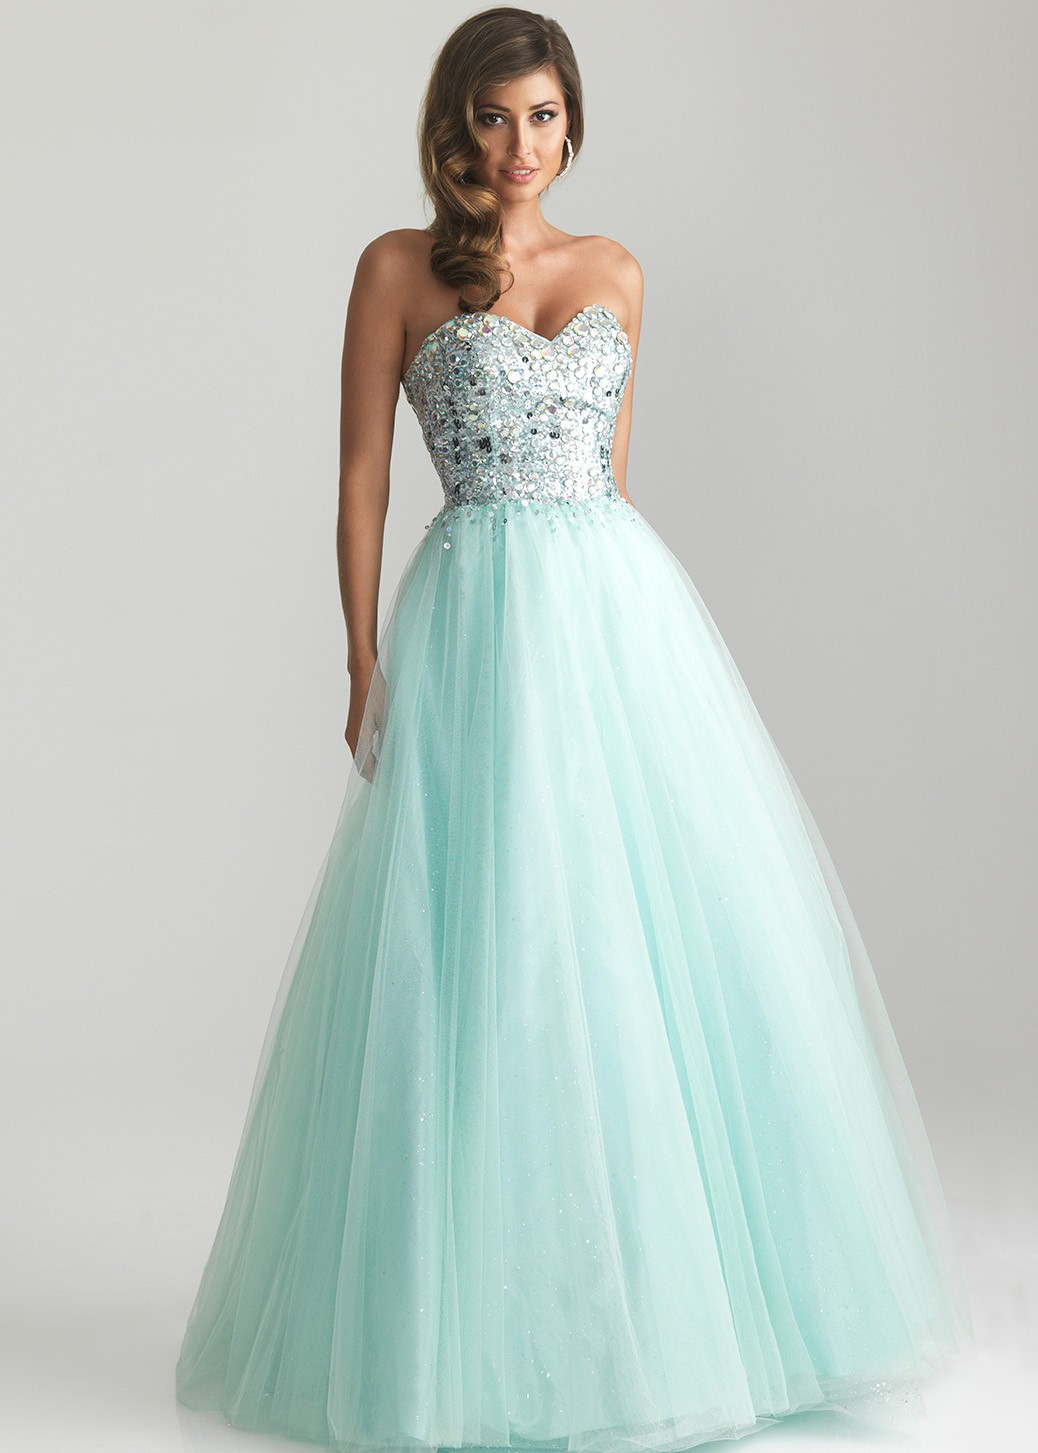 40 images about prom dresses!! on We Heart It | See more about dress ...